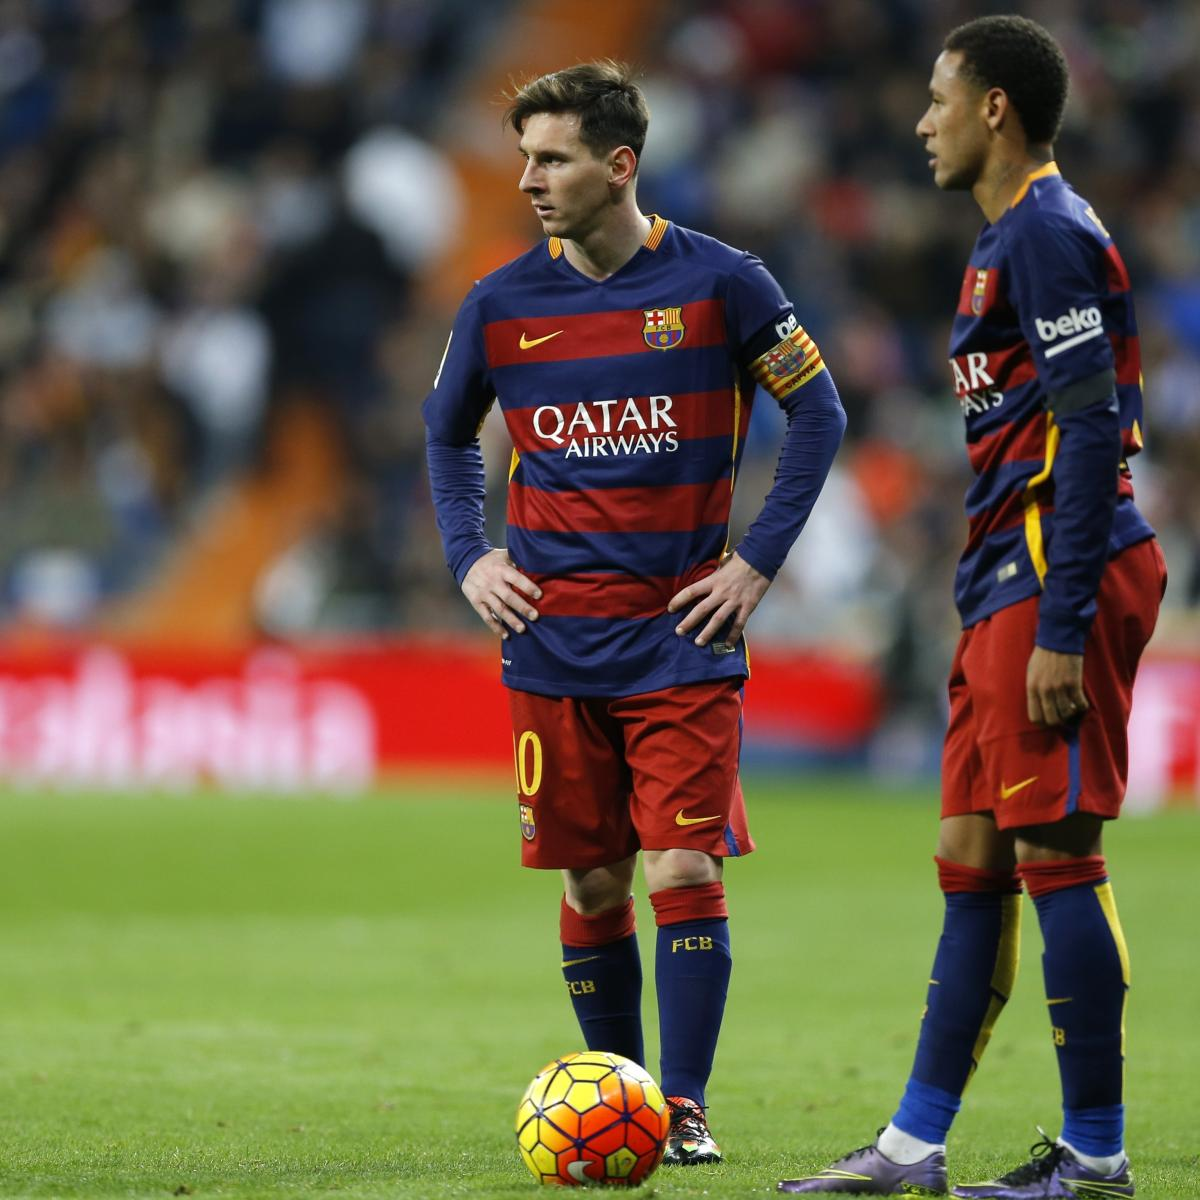 Lionel Messi A Look At The Barcelona Star S Sensational: Neymar Will Struggle To Reach Lionel Messi's Level, Says